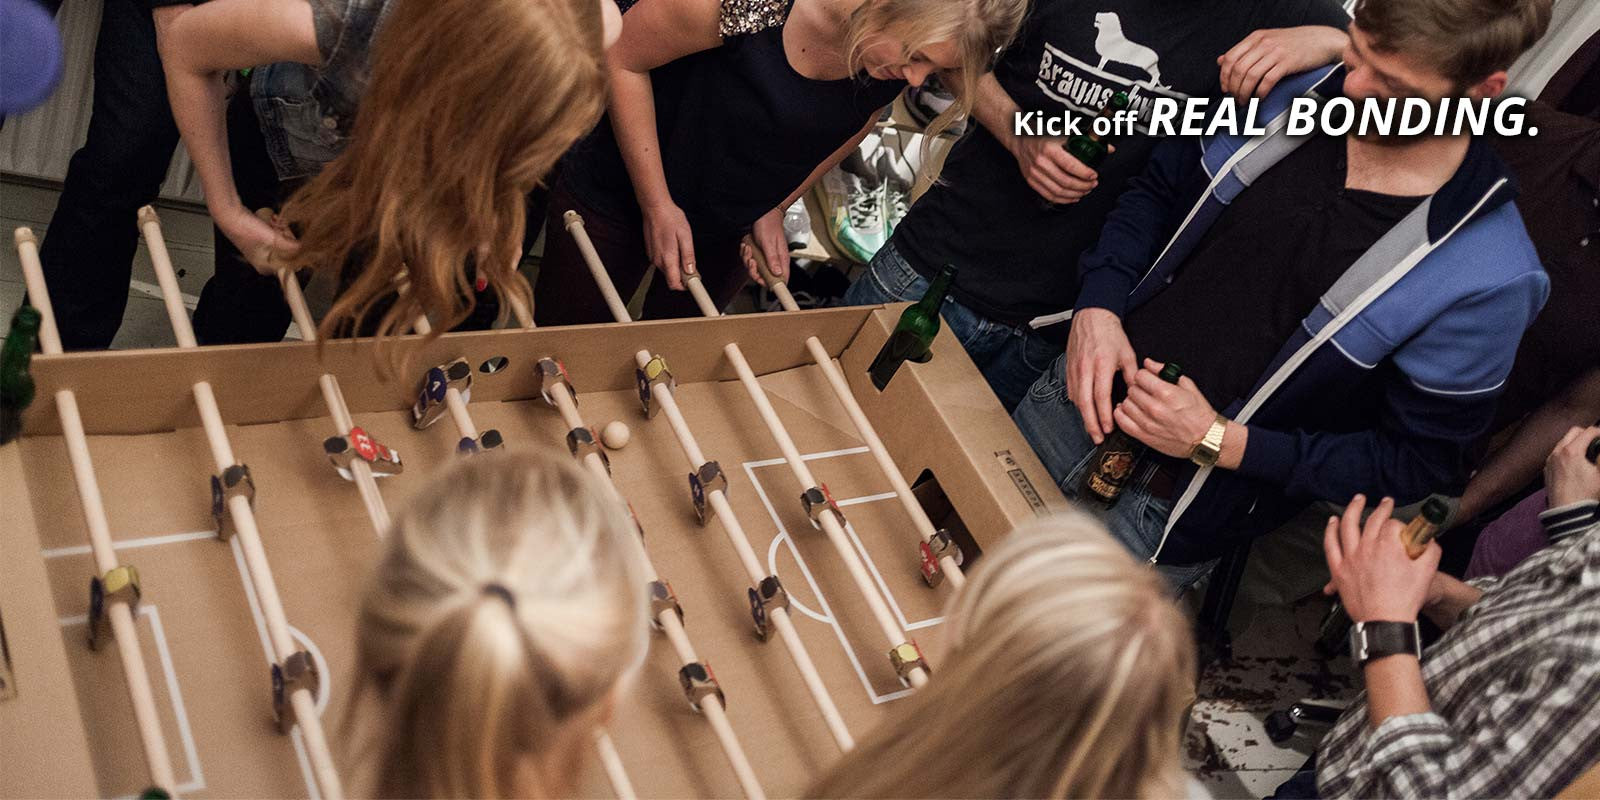 Kick off real bonding with Kartoni foosball table.